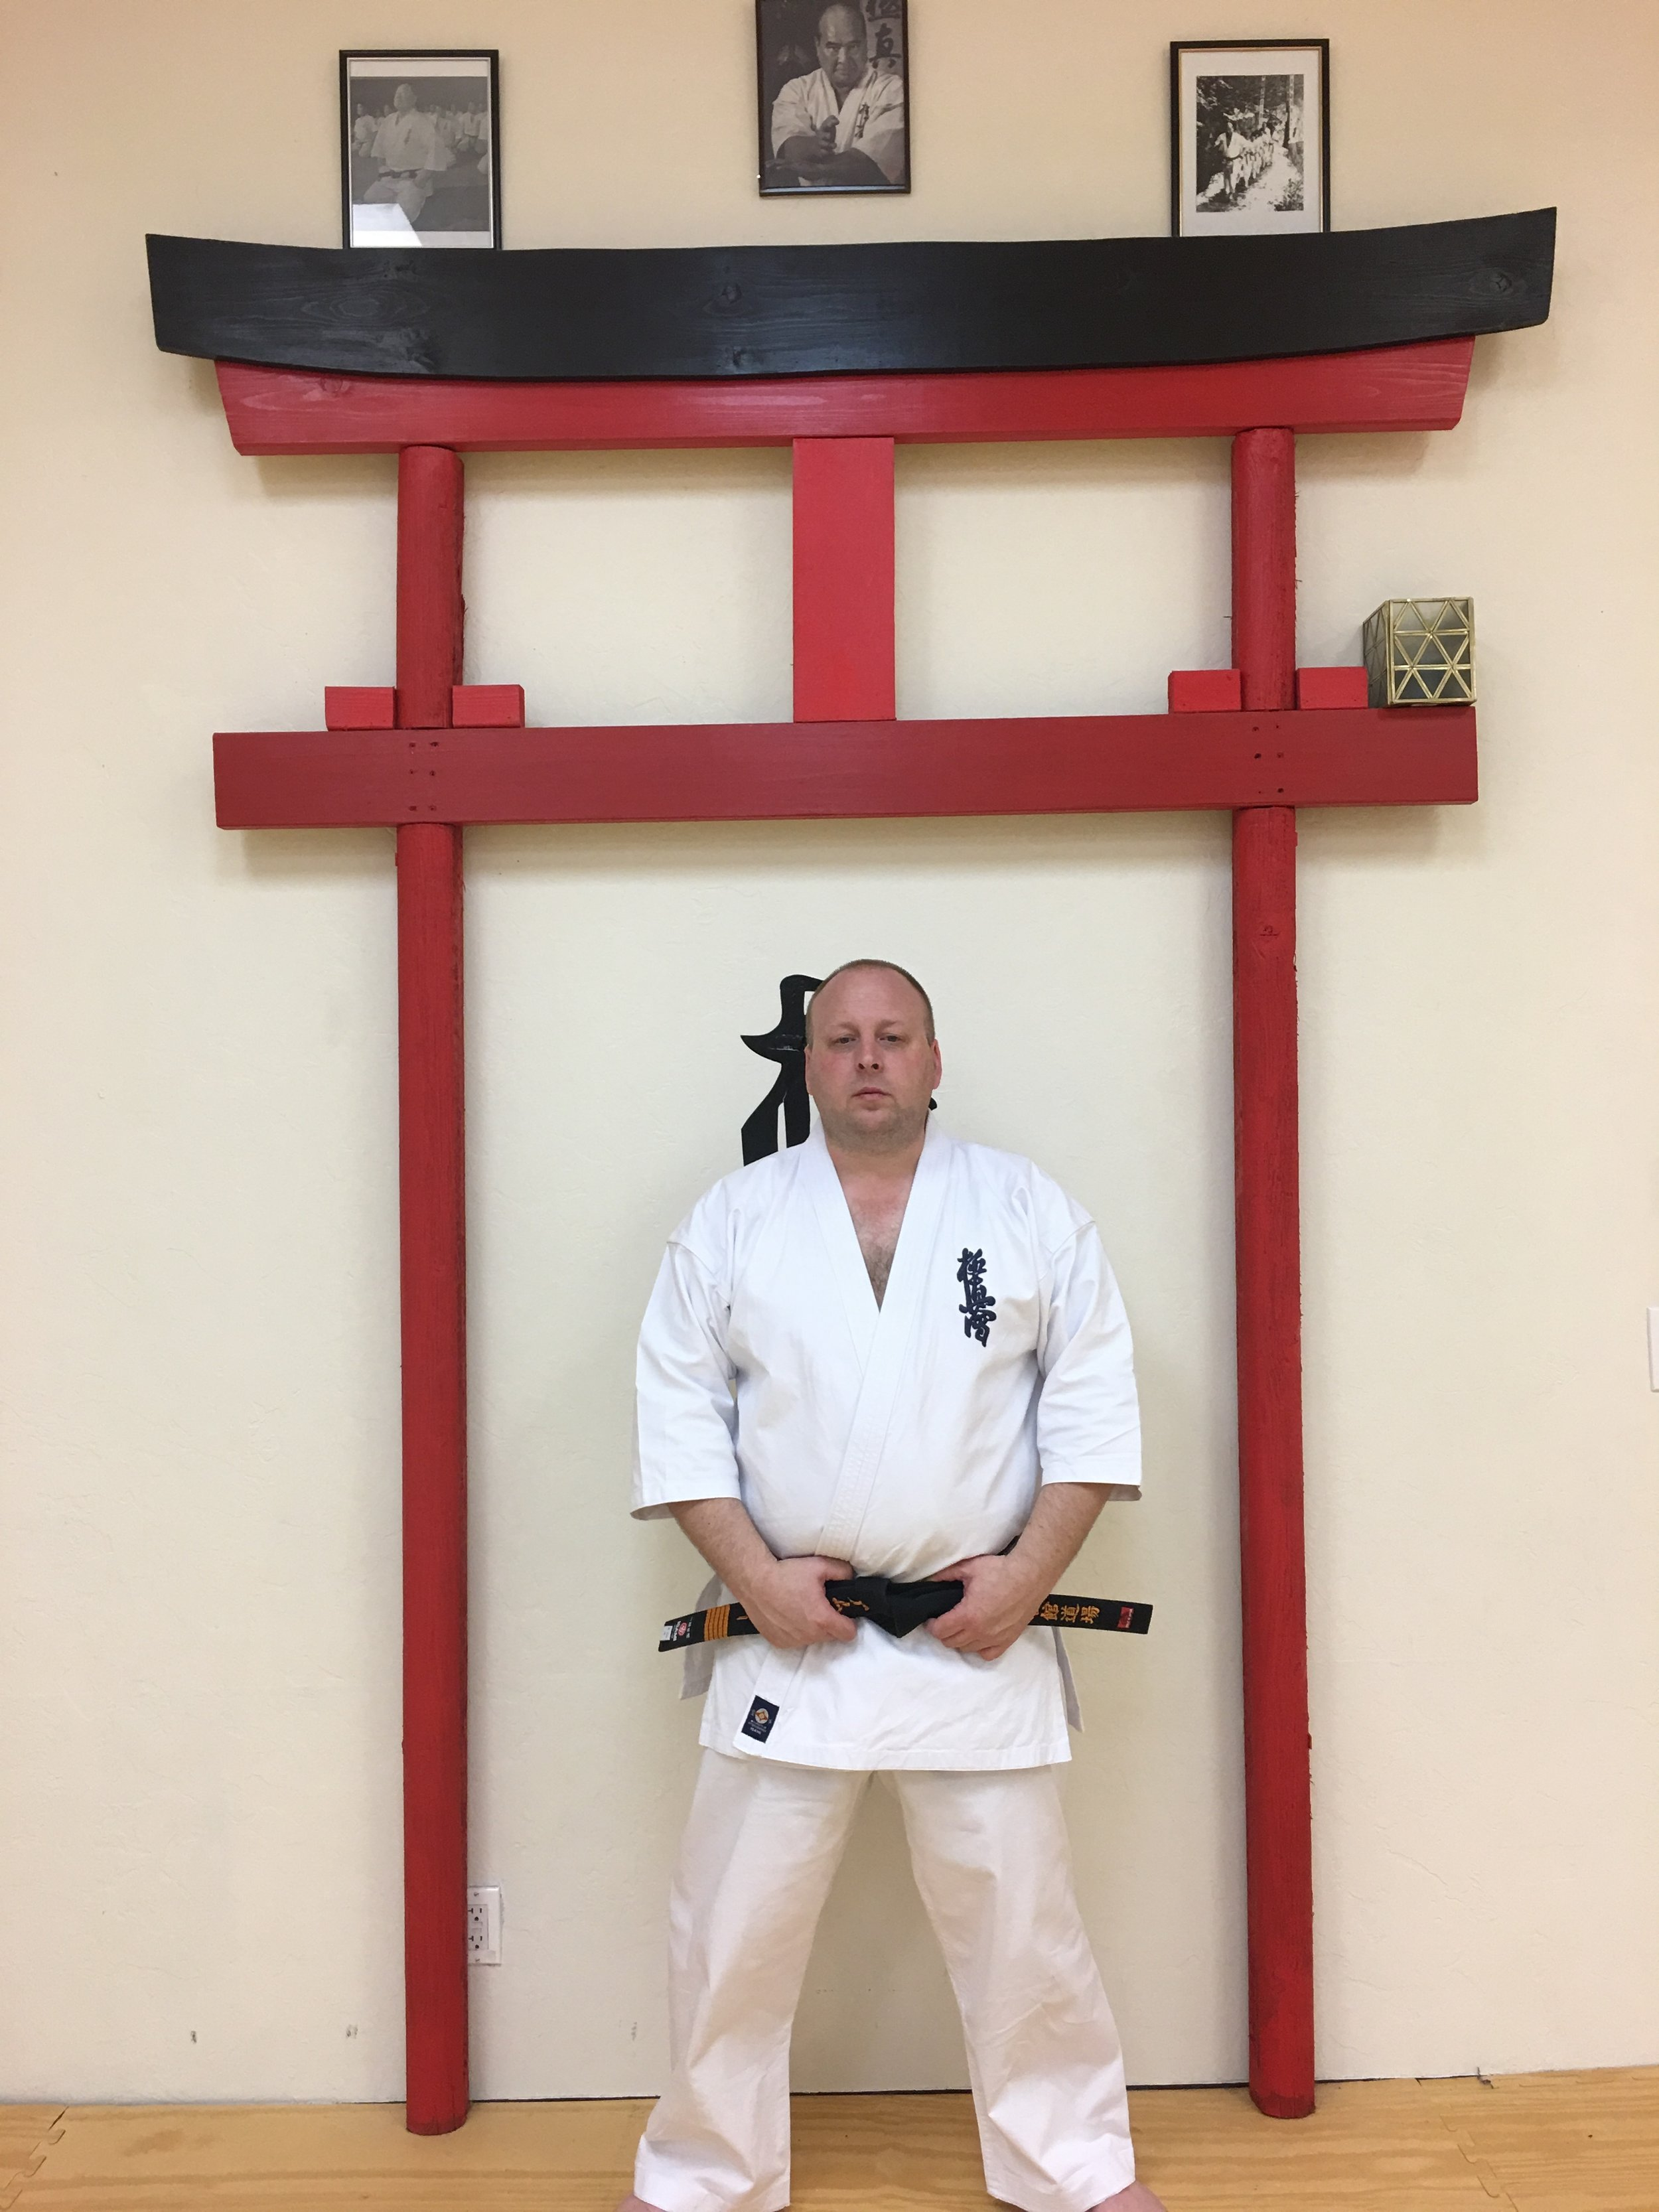 Shihan William - I having been training in the marital arts for 35 years, primarily in Kyokushin Karate (6th Dan) and Iaijutsu (Shin Shin Ryu). I have branched out into a number of styles/school in the last 35 years of Budo.I am student of both Soke Newton James (of the Fighting Black Kings Fame) and Shihan Larry Swanser. Our goal at Kaizen Kan is to pass on the wisdom that was past on to us, to the next generation, to see the arts live and breath as they help improve the human qualities. These arts belong to everyone. I am a Shihan of the Bas-I Kyokushin Karate Organization and serve as the Arizona Branch Chief.Professionally I have served our nation as a member of the U.S. Army (MOS 11B1P) and am a Federal Law Enforcement Agent .I am a proud father and husband